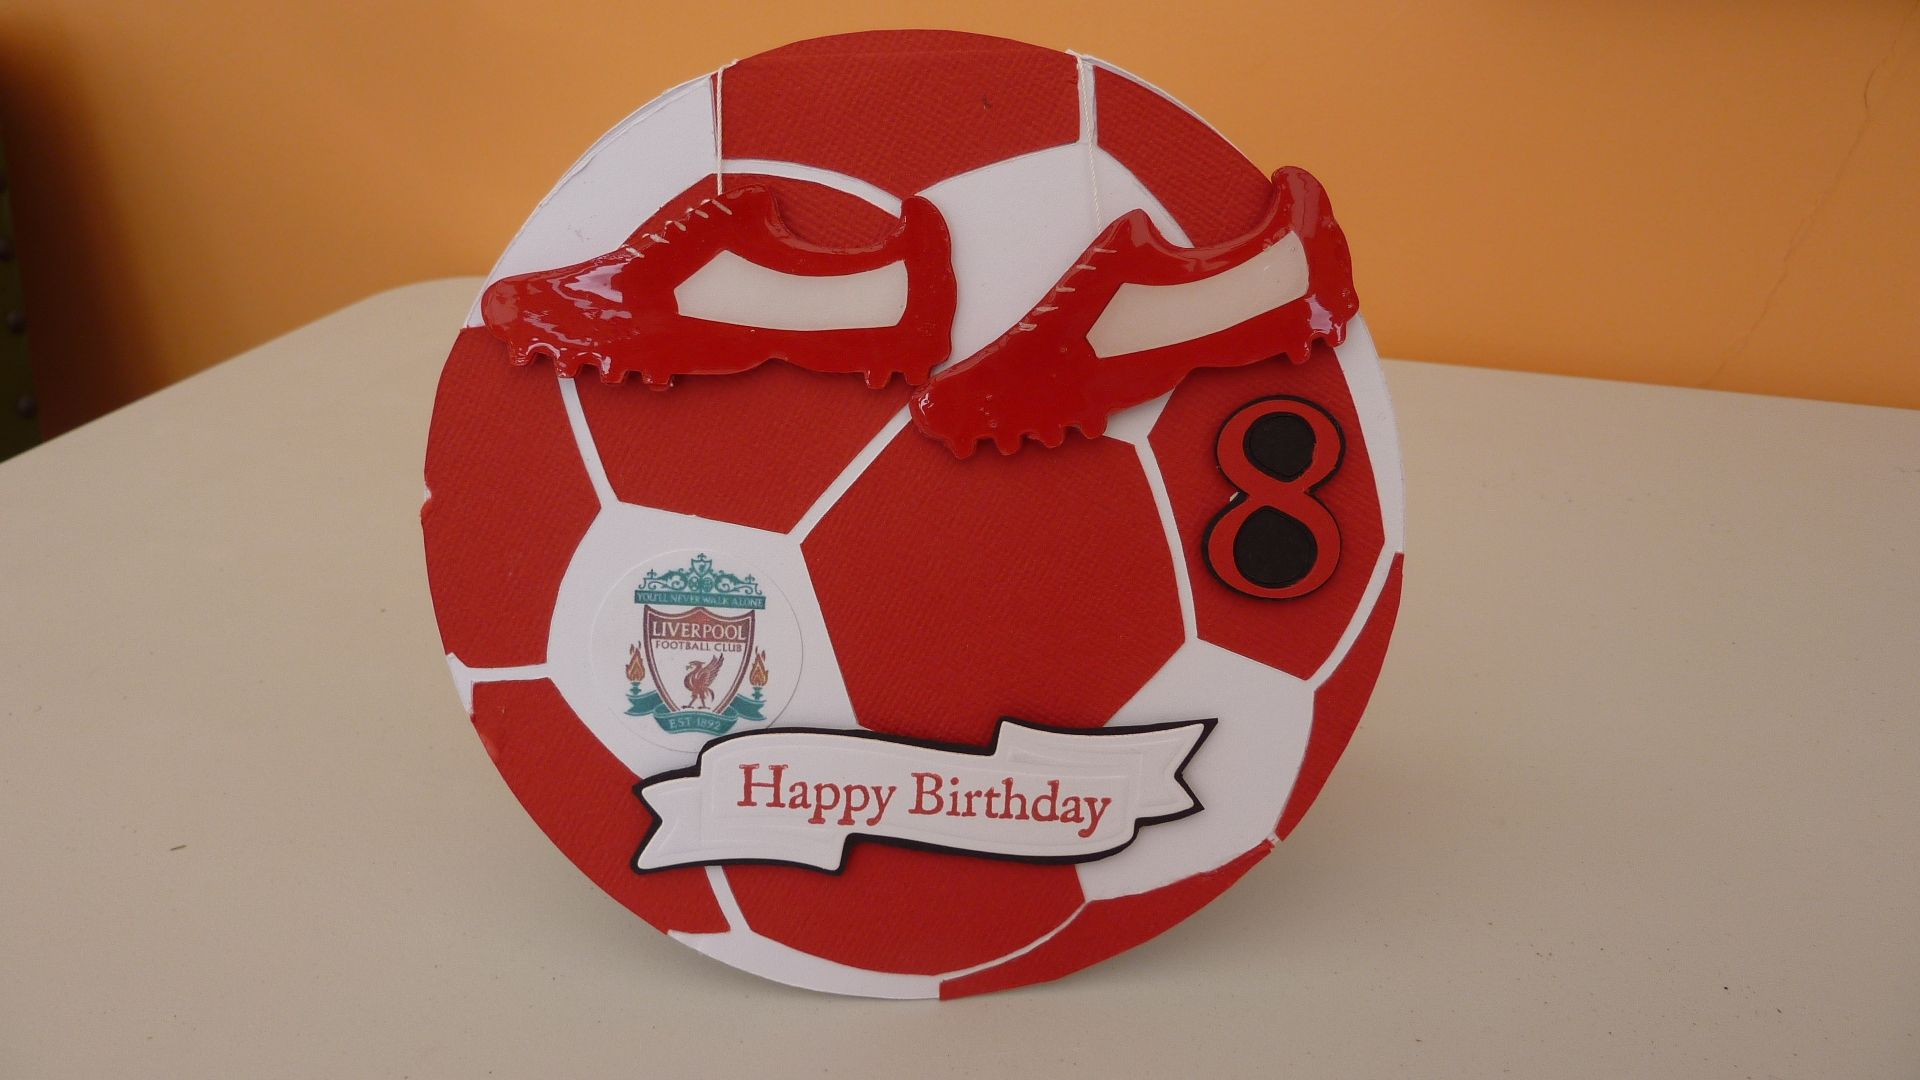 Football Birthday Card My Grandson Supports Liverpool So I Thought Id Make This For His 8th Hope You Like It Oscar